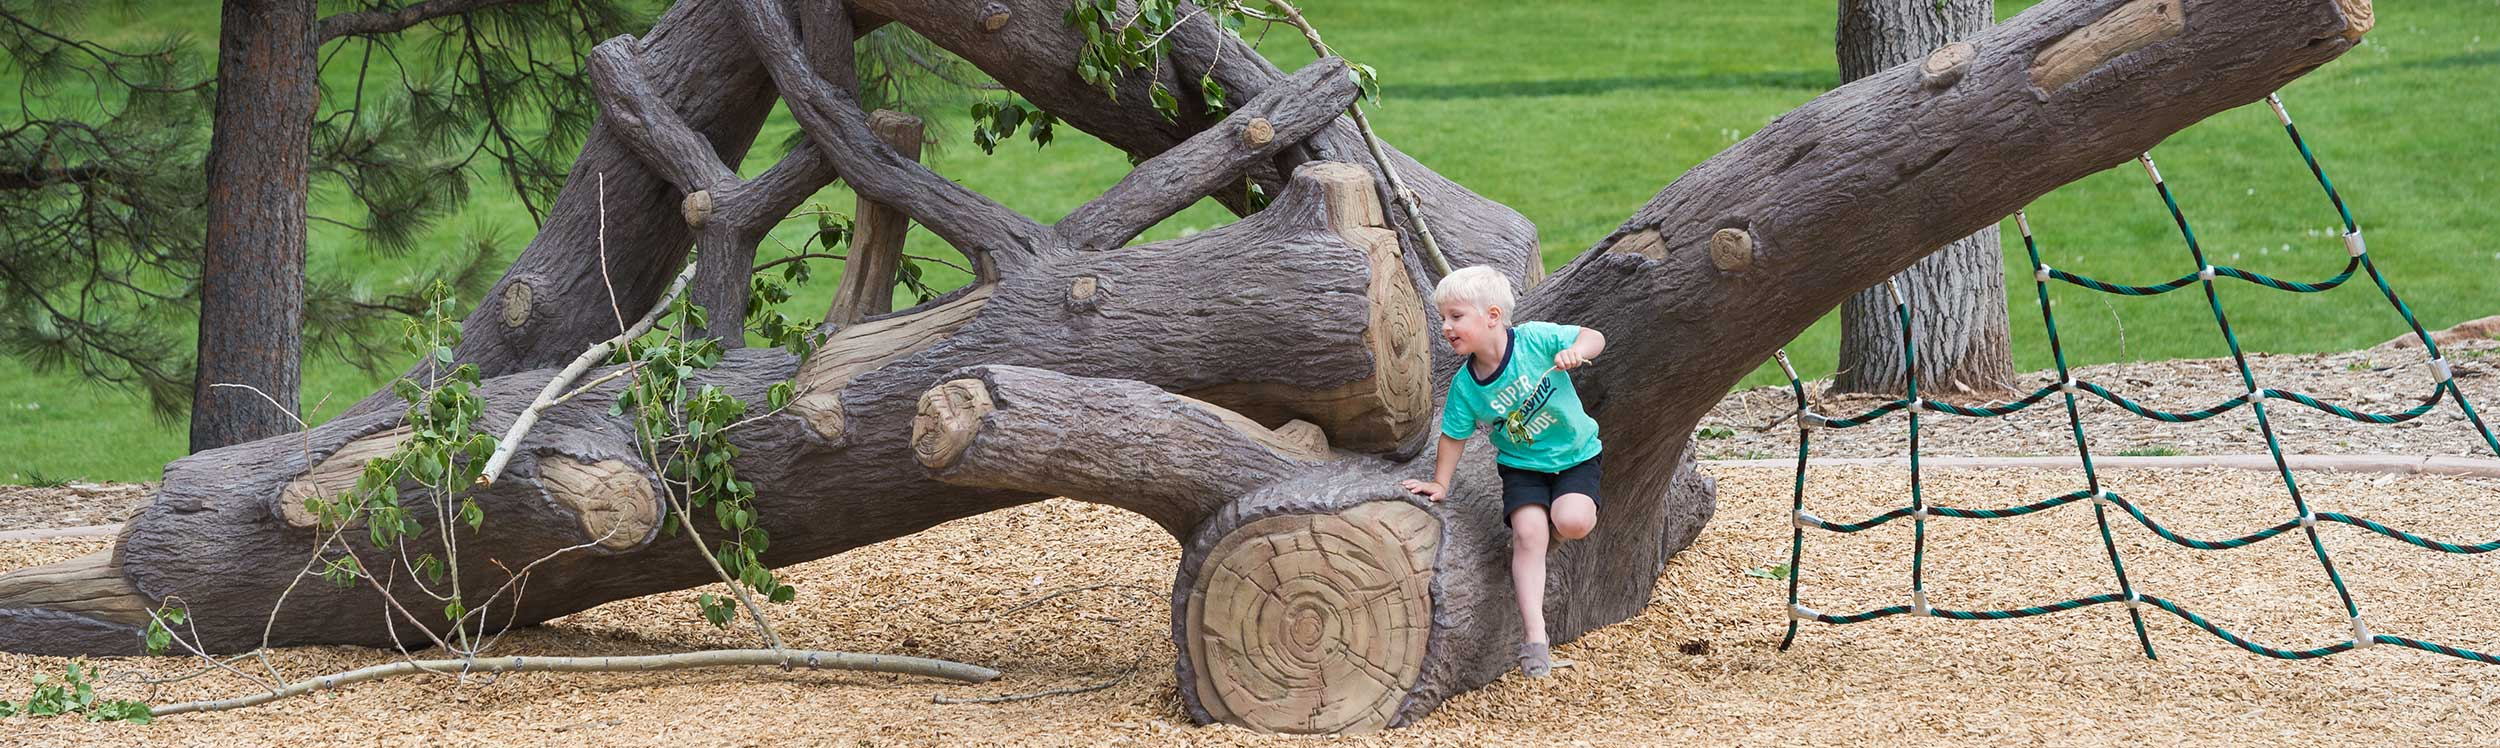 Natural looking sculpted tree play structure for climbing